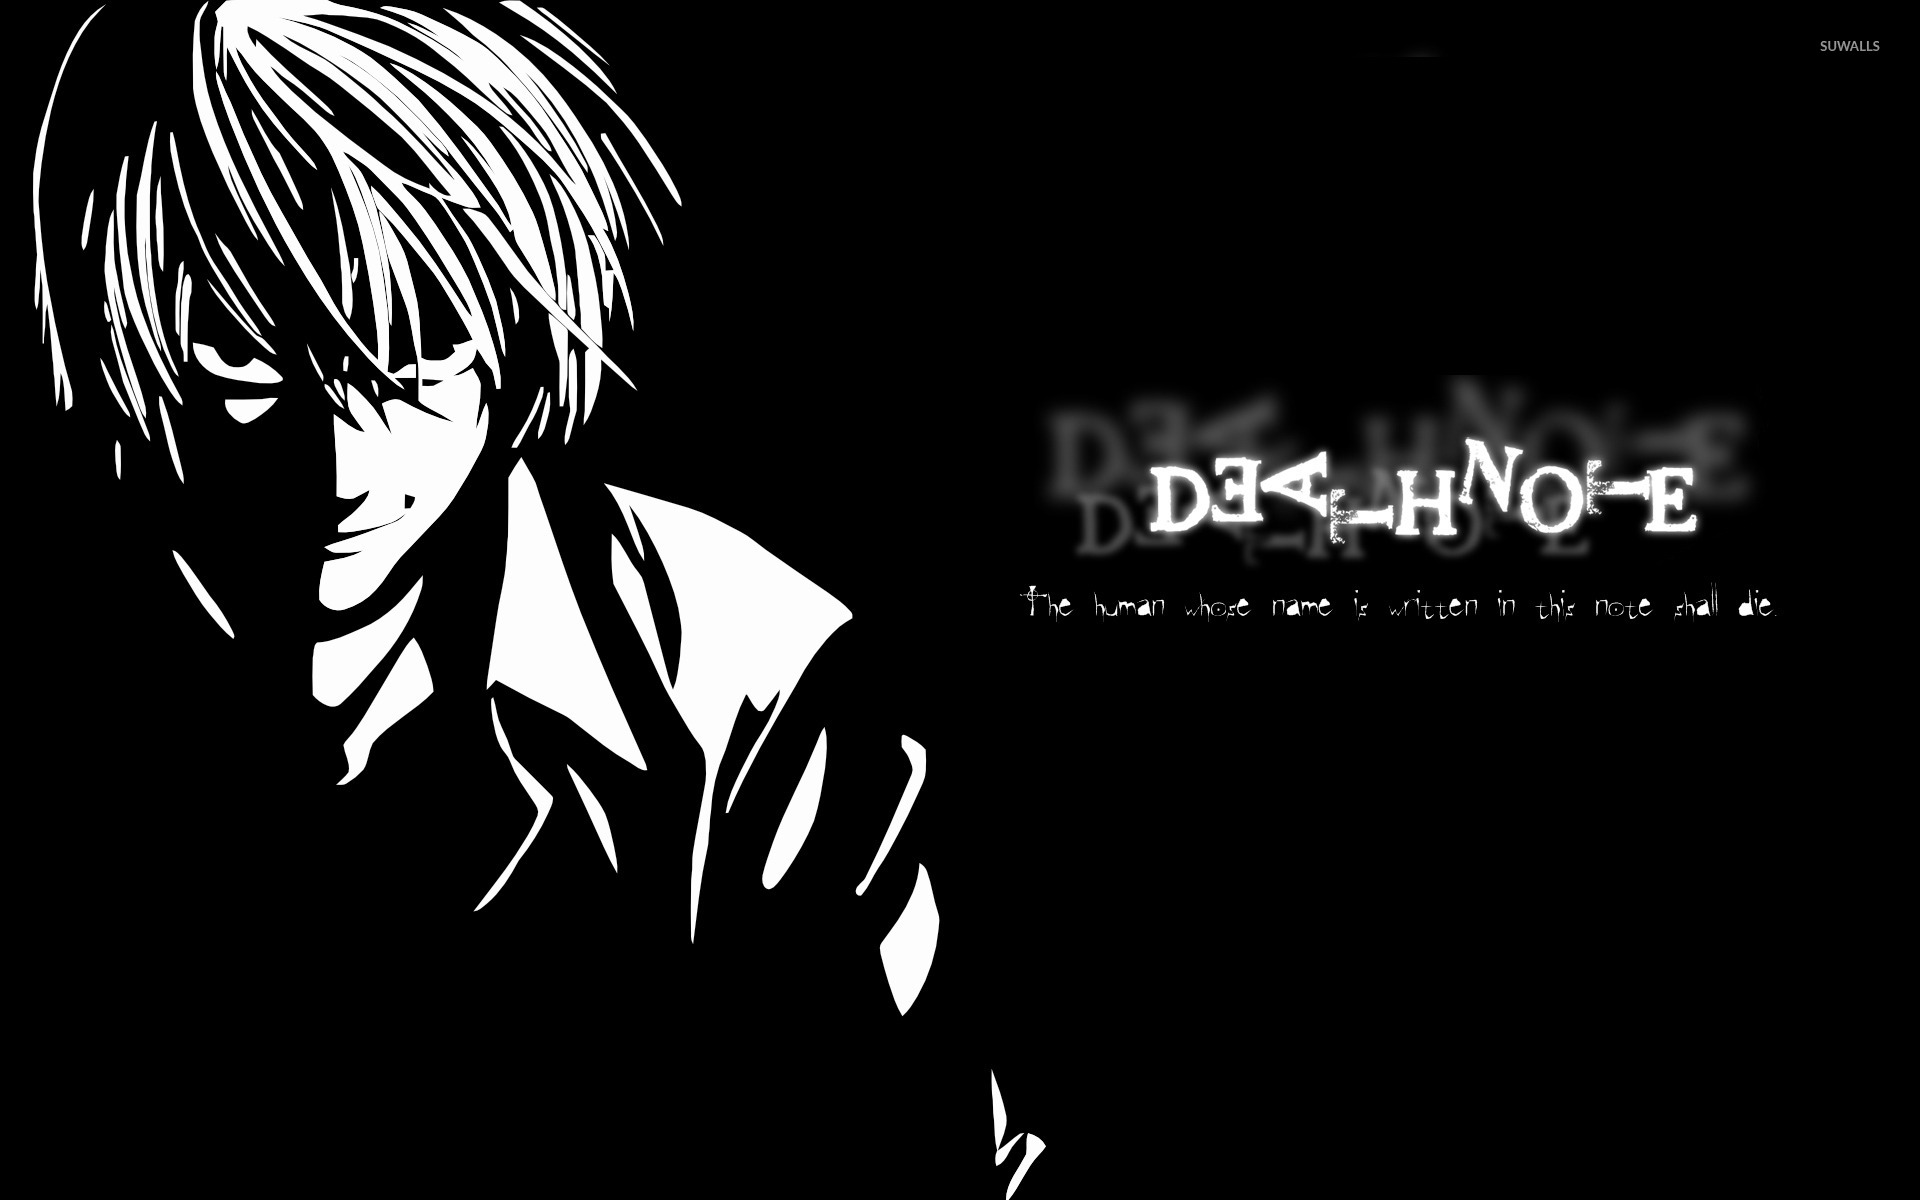 Light - Death Note [4] wallpaper - Anime wallpapers - #13754